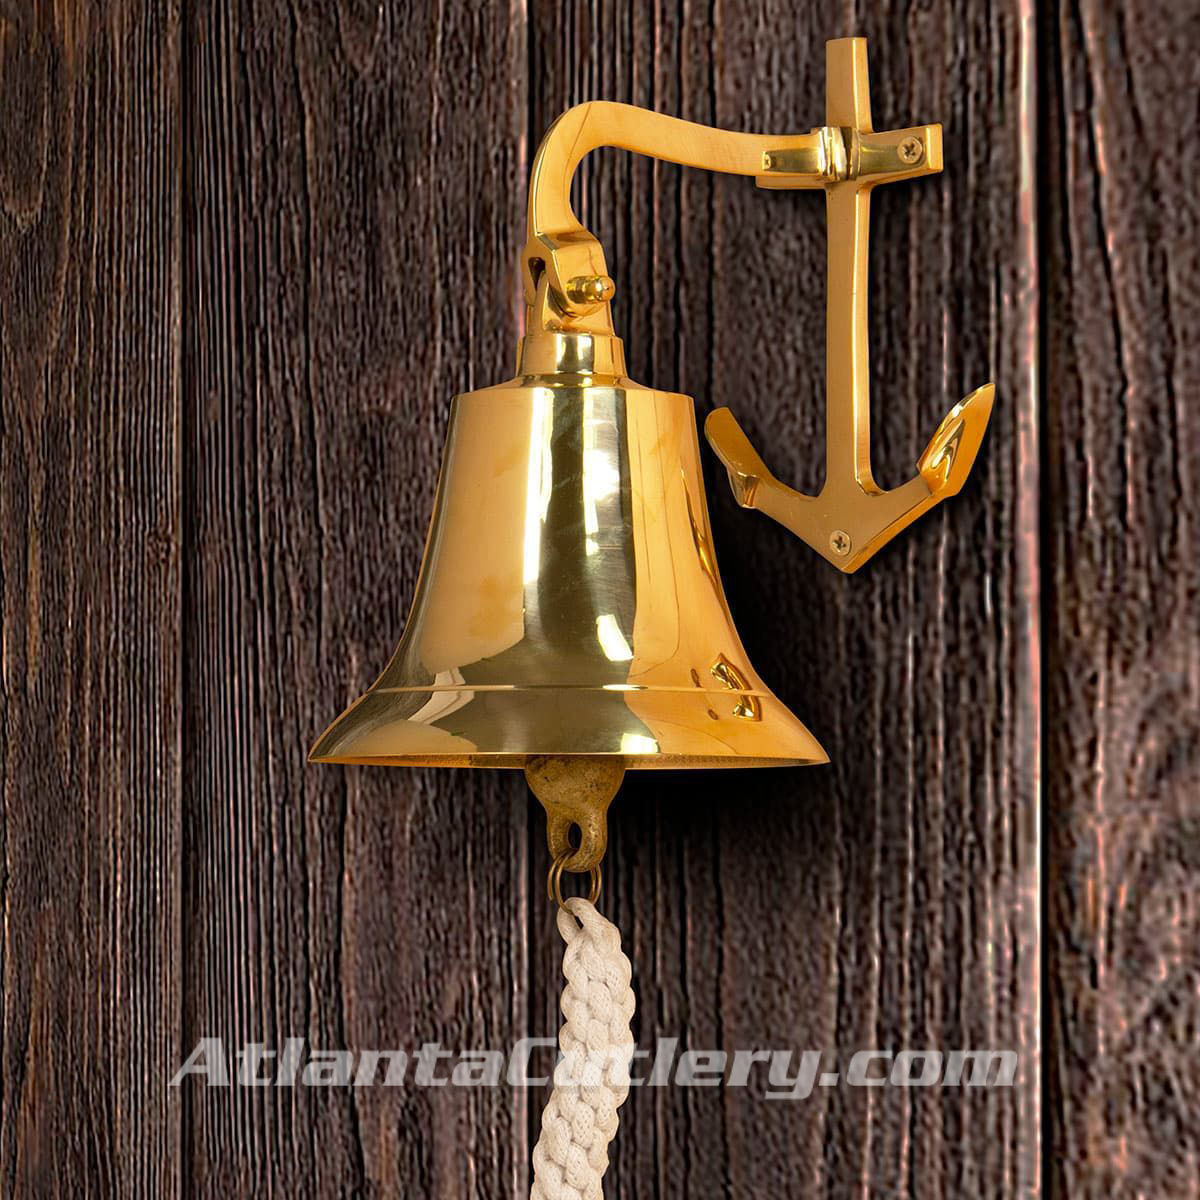 polished solid brass bell with anchor-shaped wall mount bracket and rich clear tone